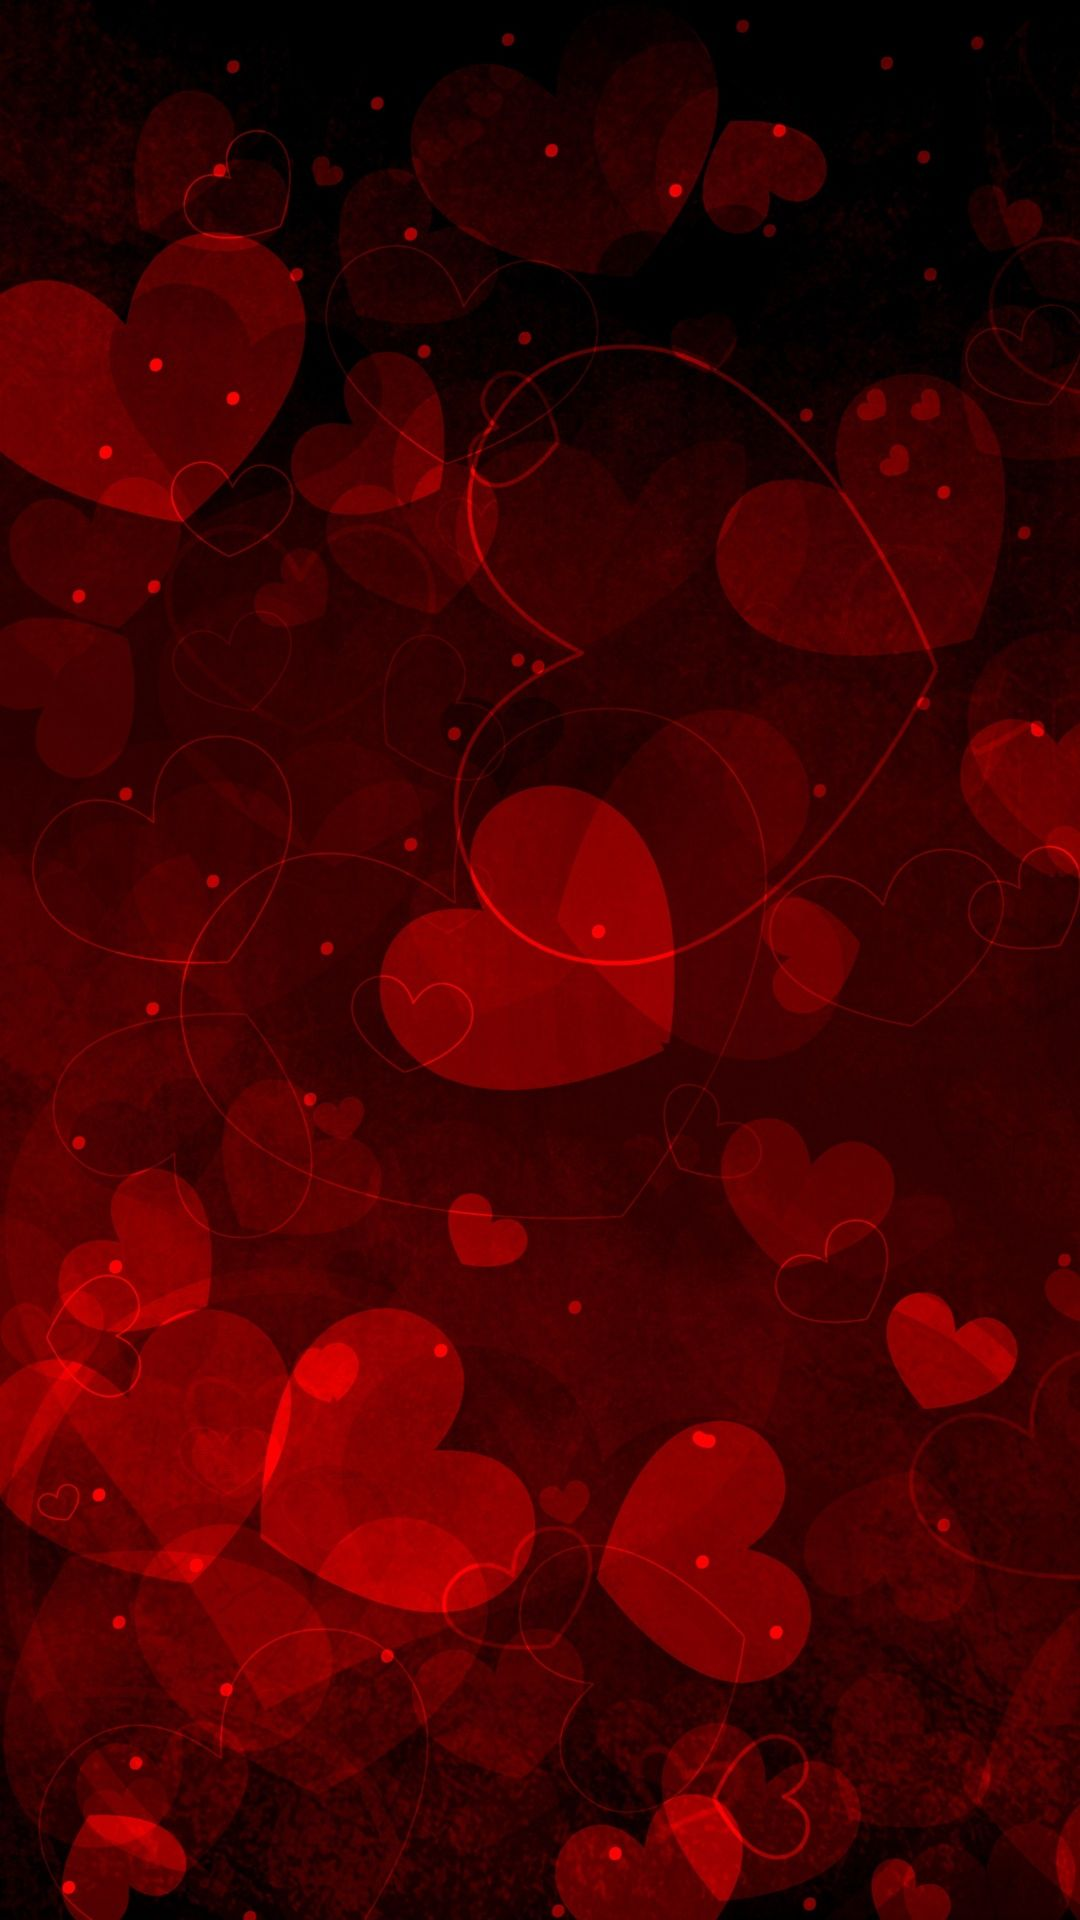 Red Heart Iphone Wallpapers Top Free Red Heart Iphone Backgrounds Wallpaperaccess